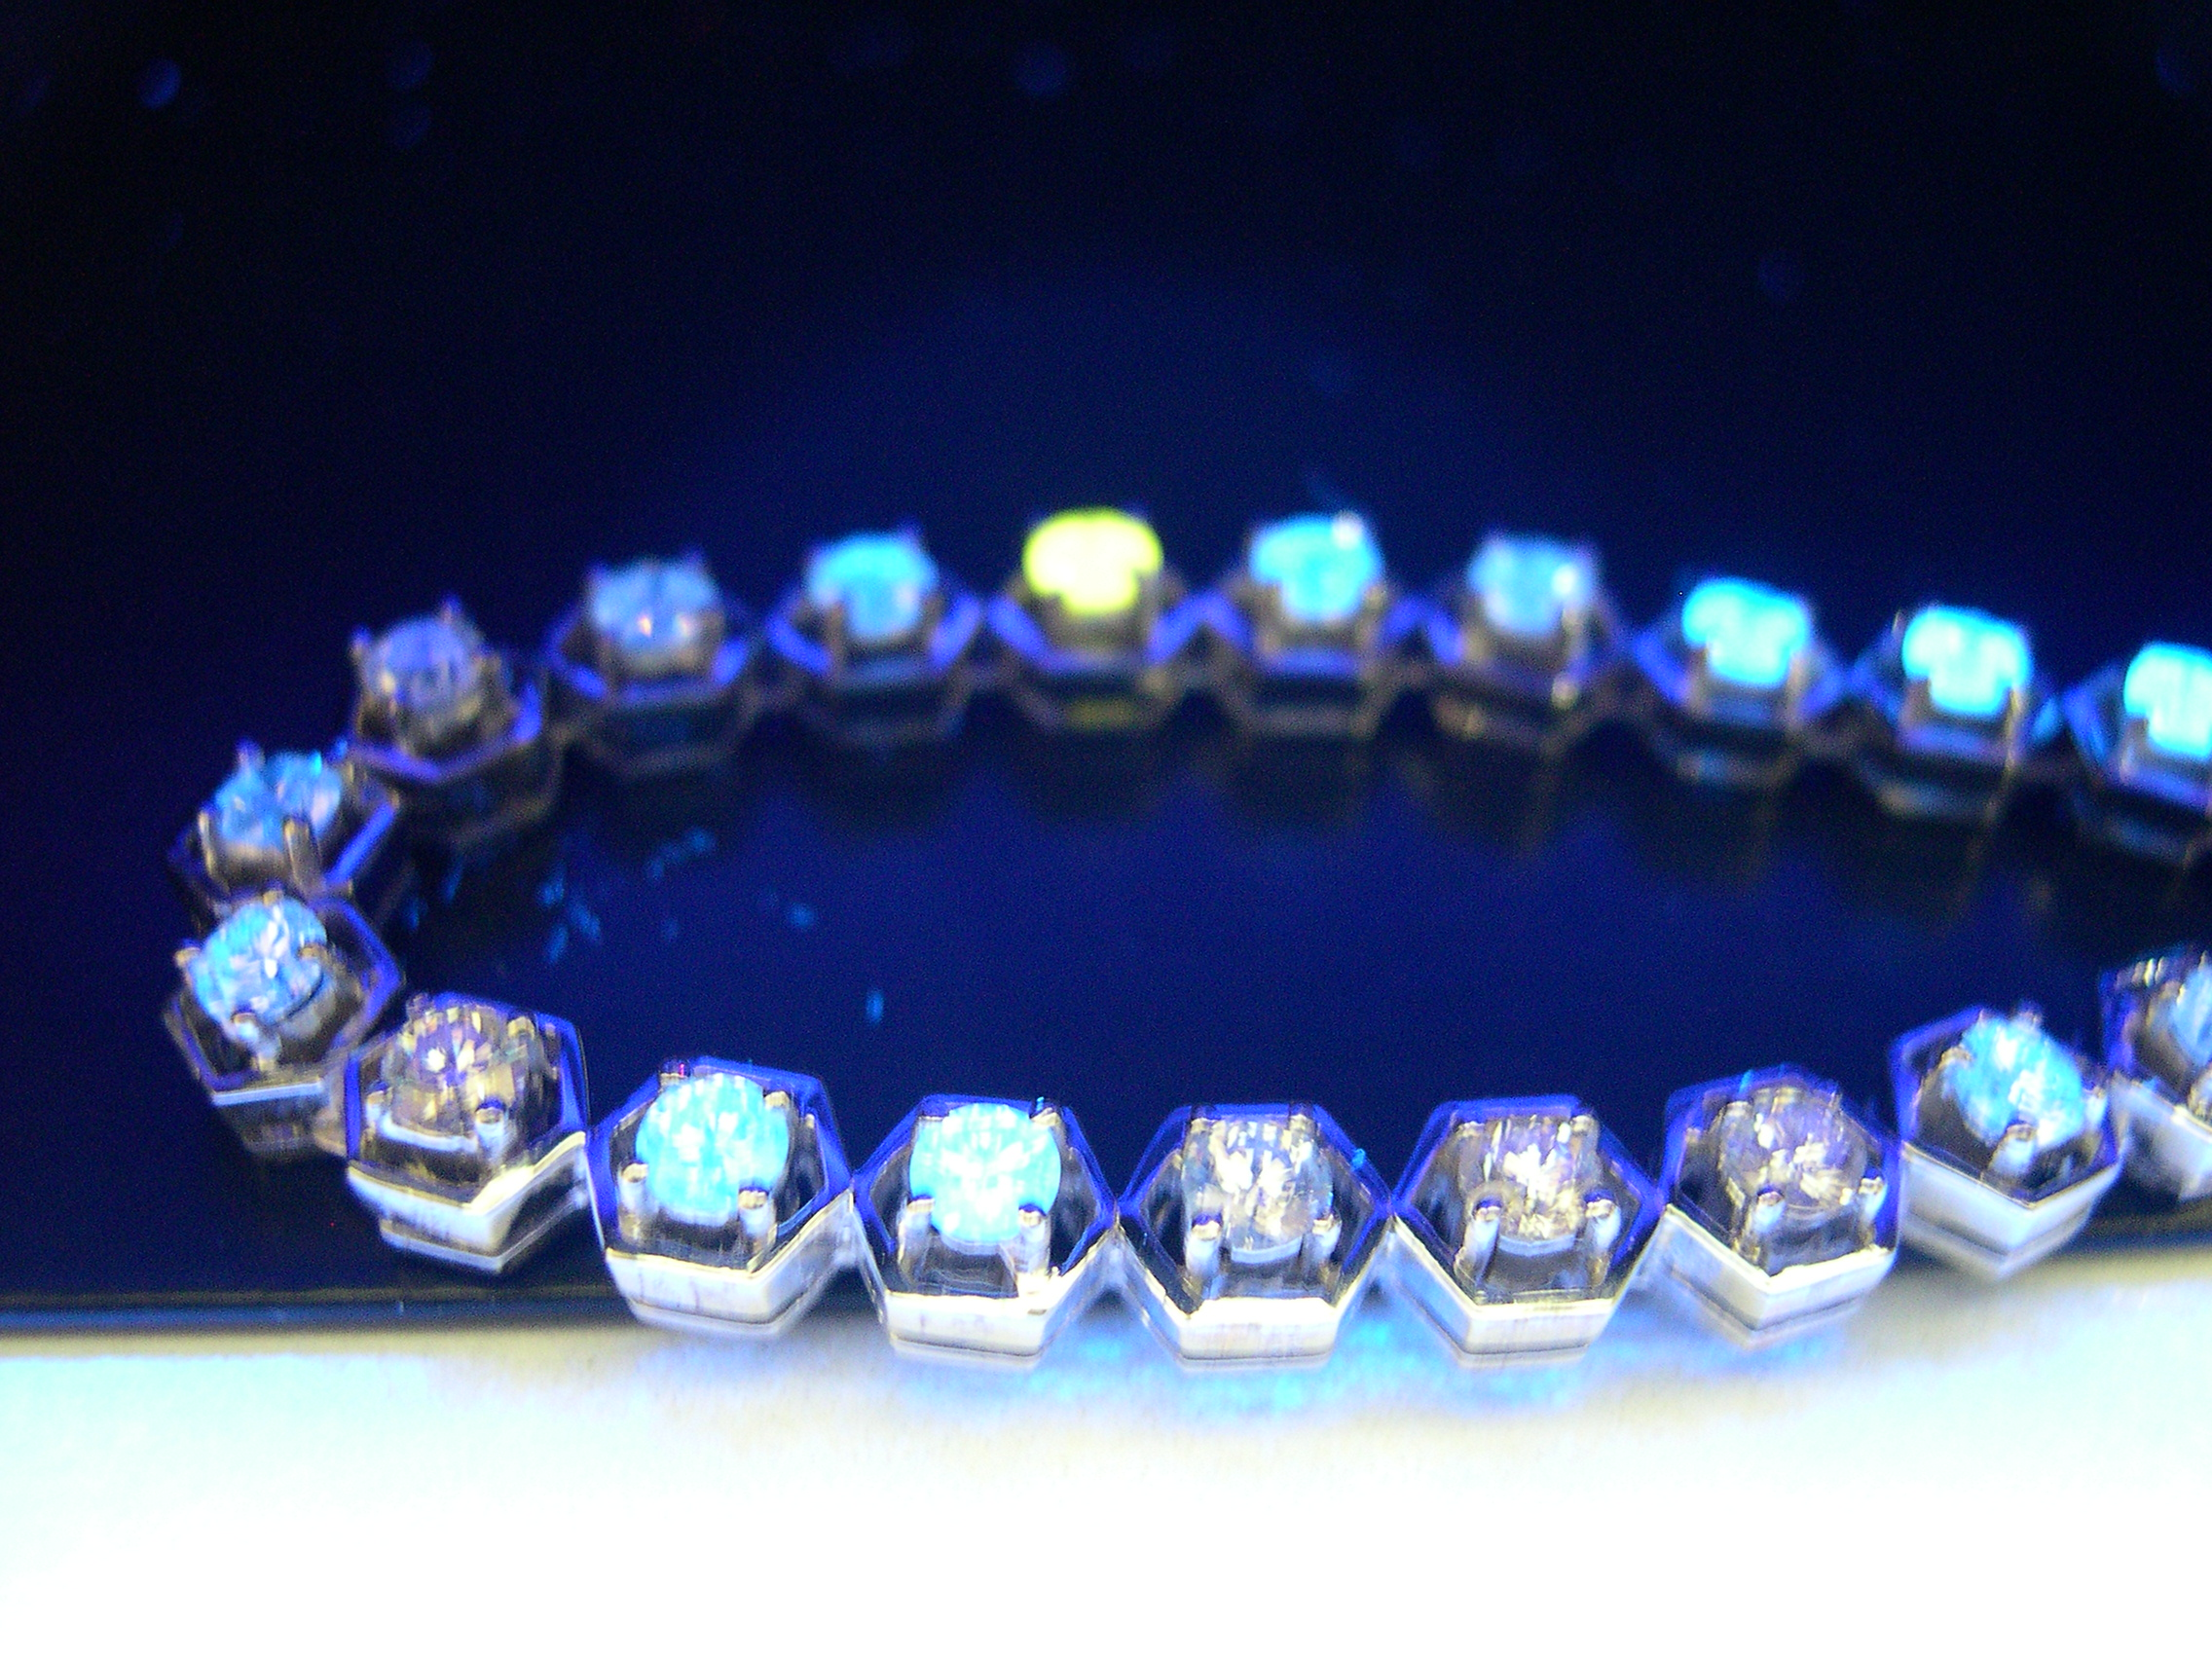 laboratory of photograph gold easy igr a the fluorescence clear diamond item services diamonds for rush product identification